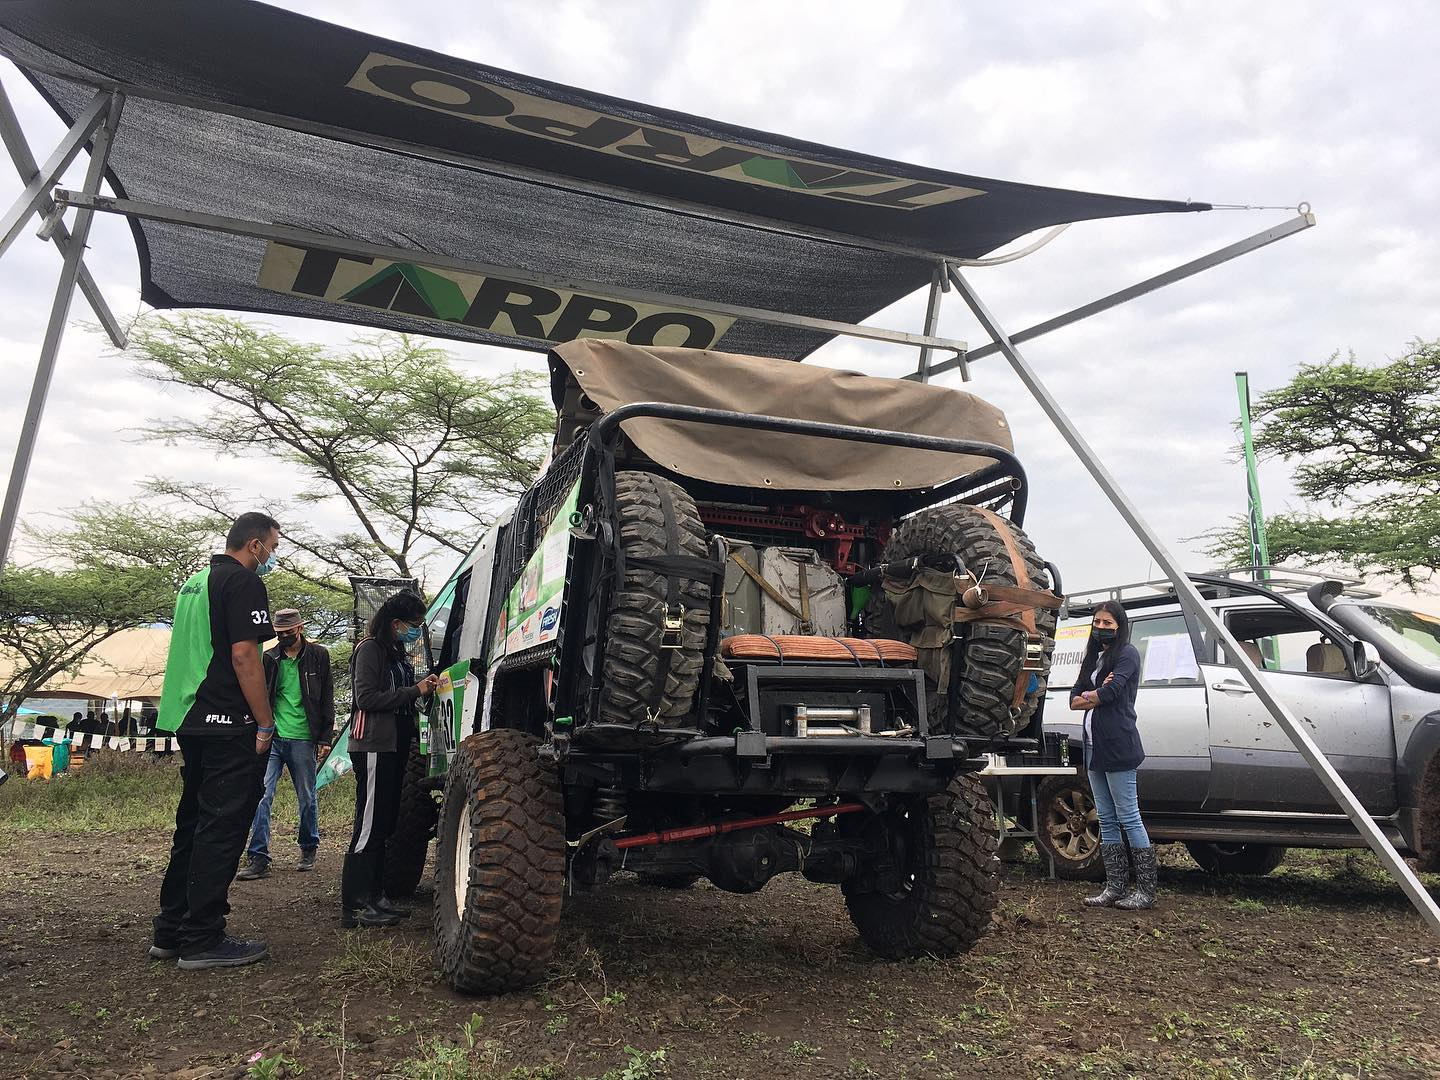 What You Need To Know About The Rhino Charge